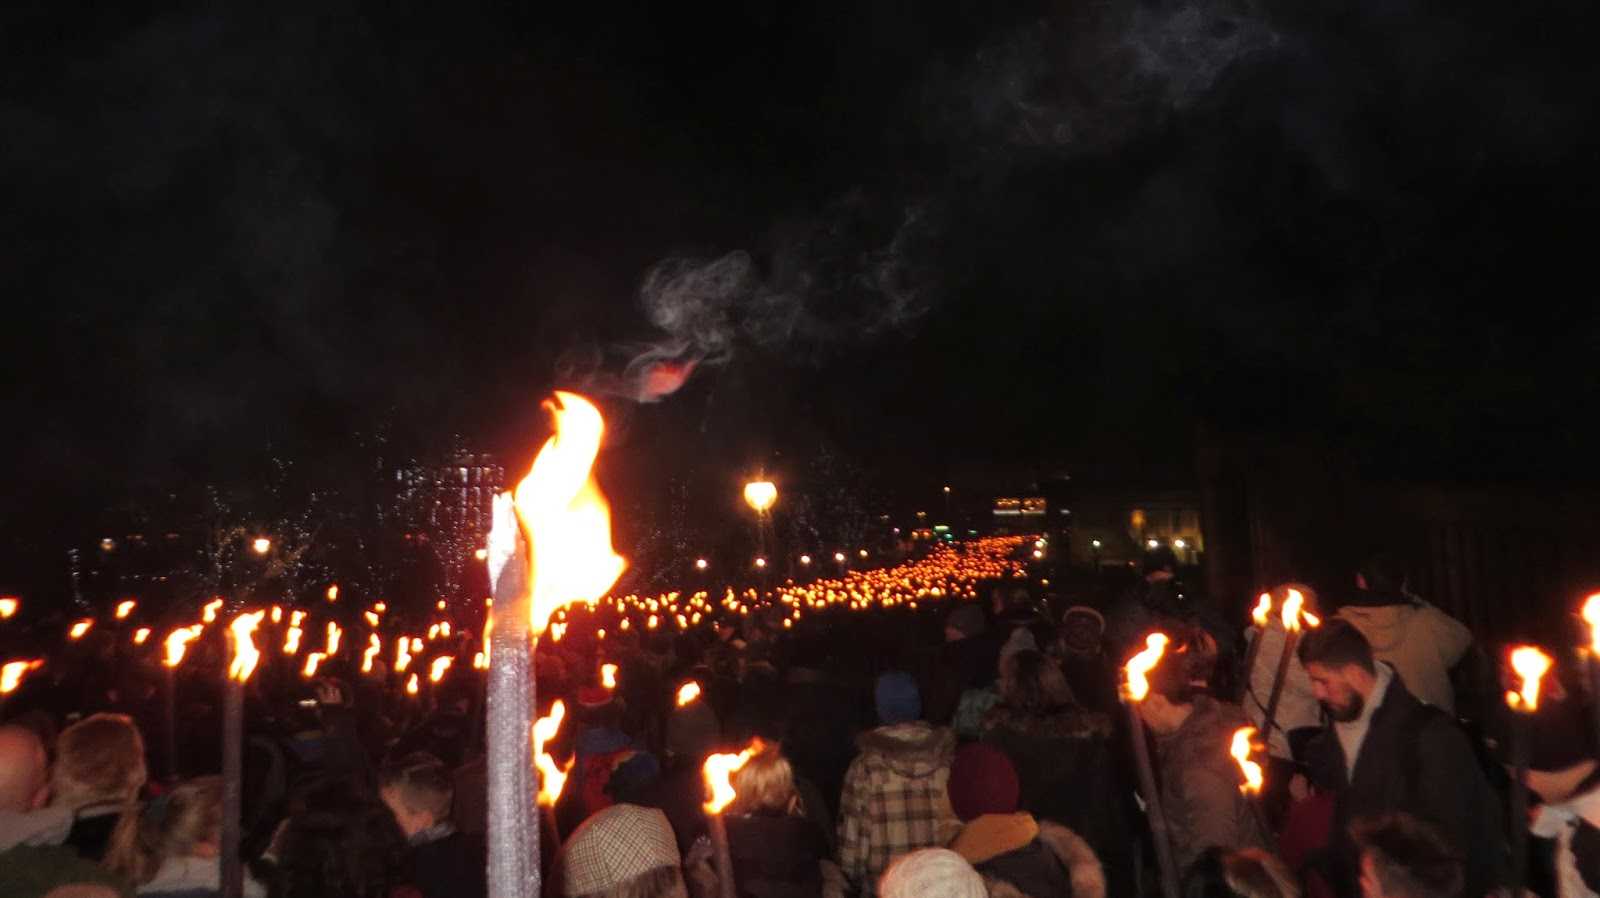 Hogmanay, Torchlight Procession, Edinburgh, Scotland, Things to do, Must do, Travel New Years, Torch, Flame, Fire, Erins Ever After, Erin's Ever After, Erinseverafter,